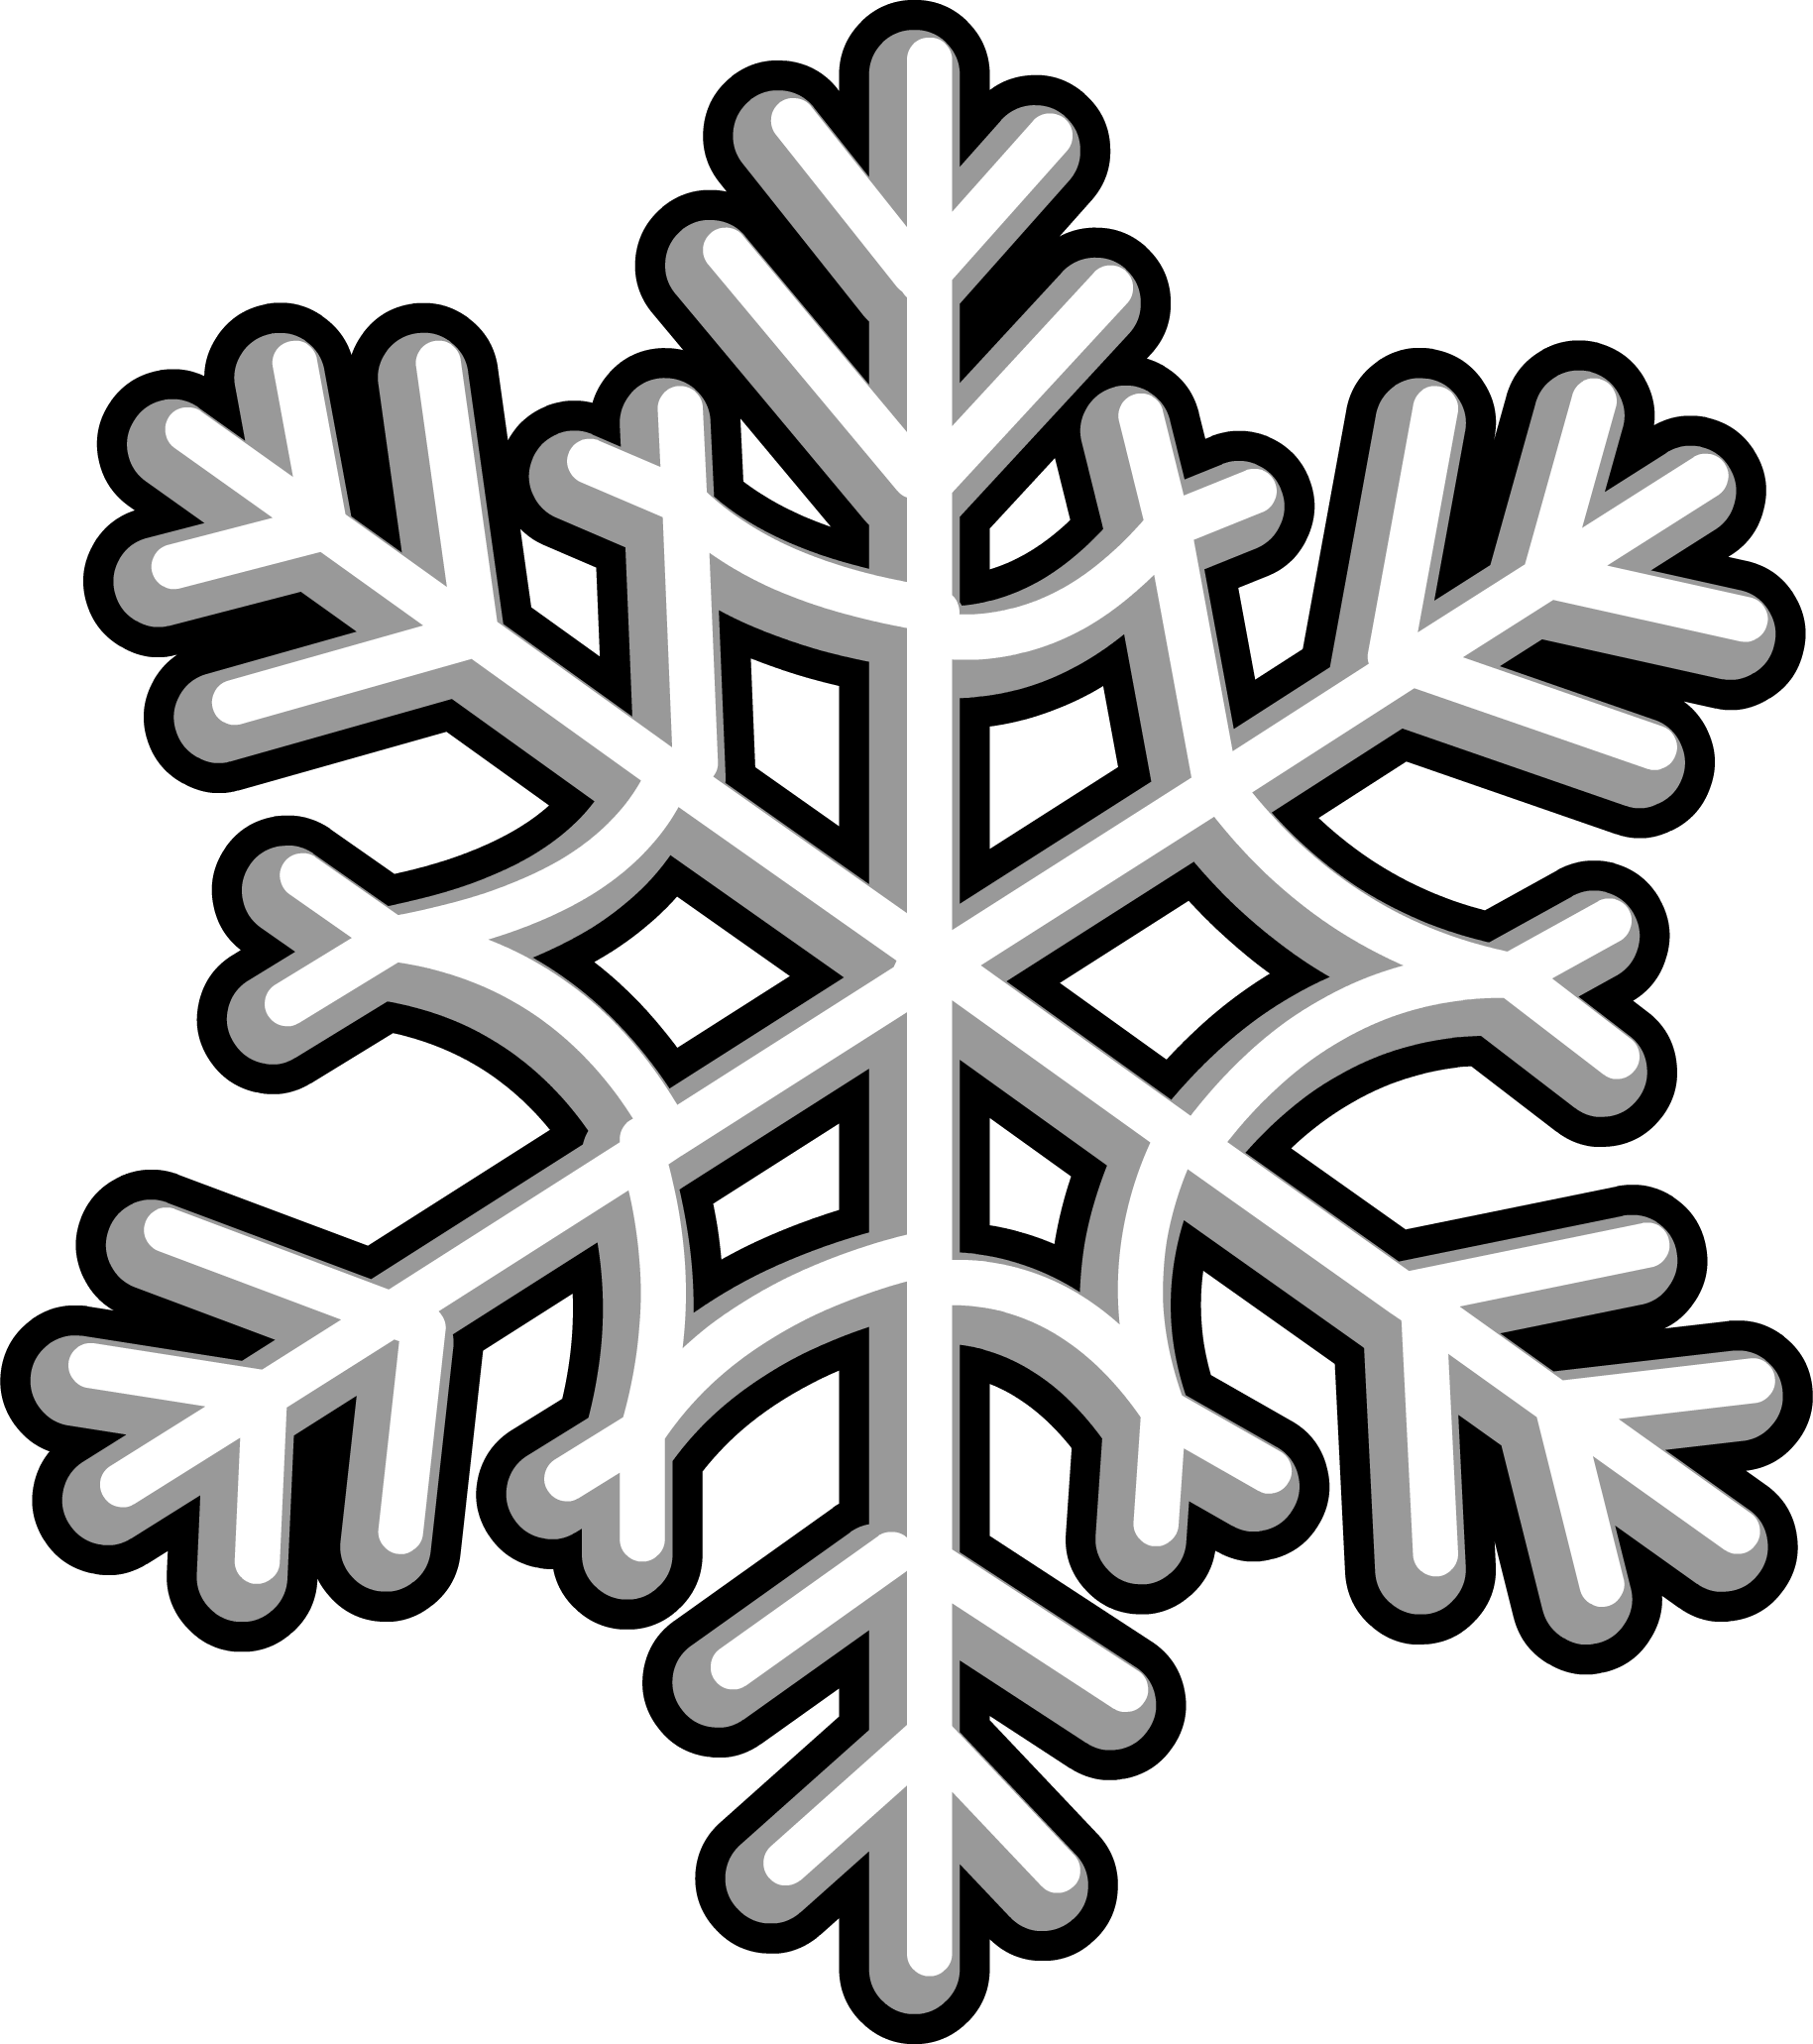 How to draw snowflake clipart png Image - Snowflake Furniture.png | Club Penguin Wiki | FANDOM powered ... png